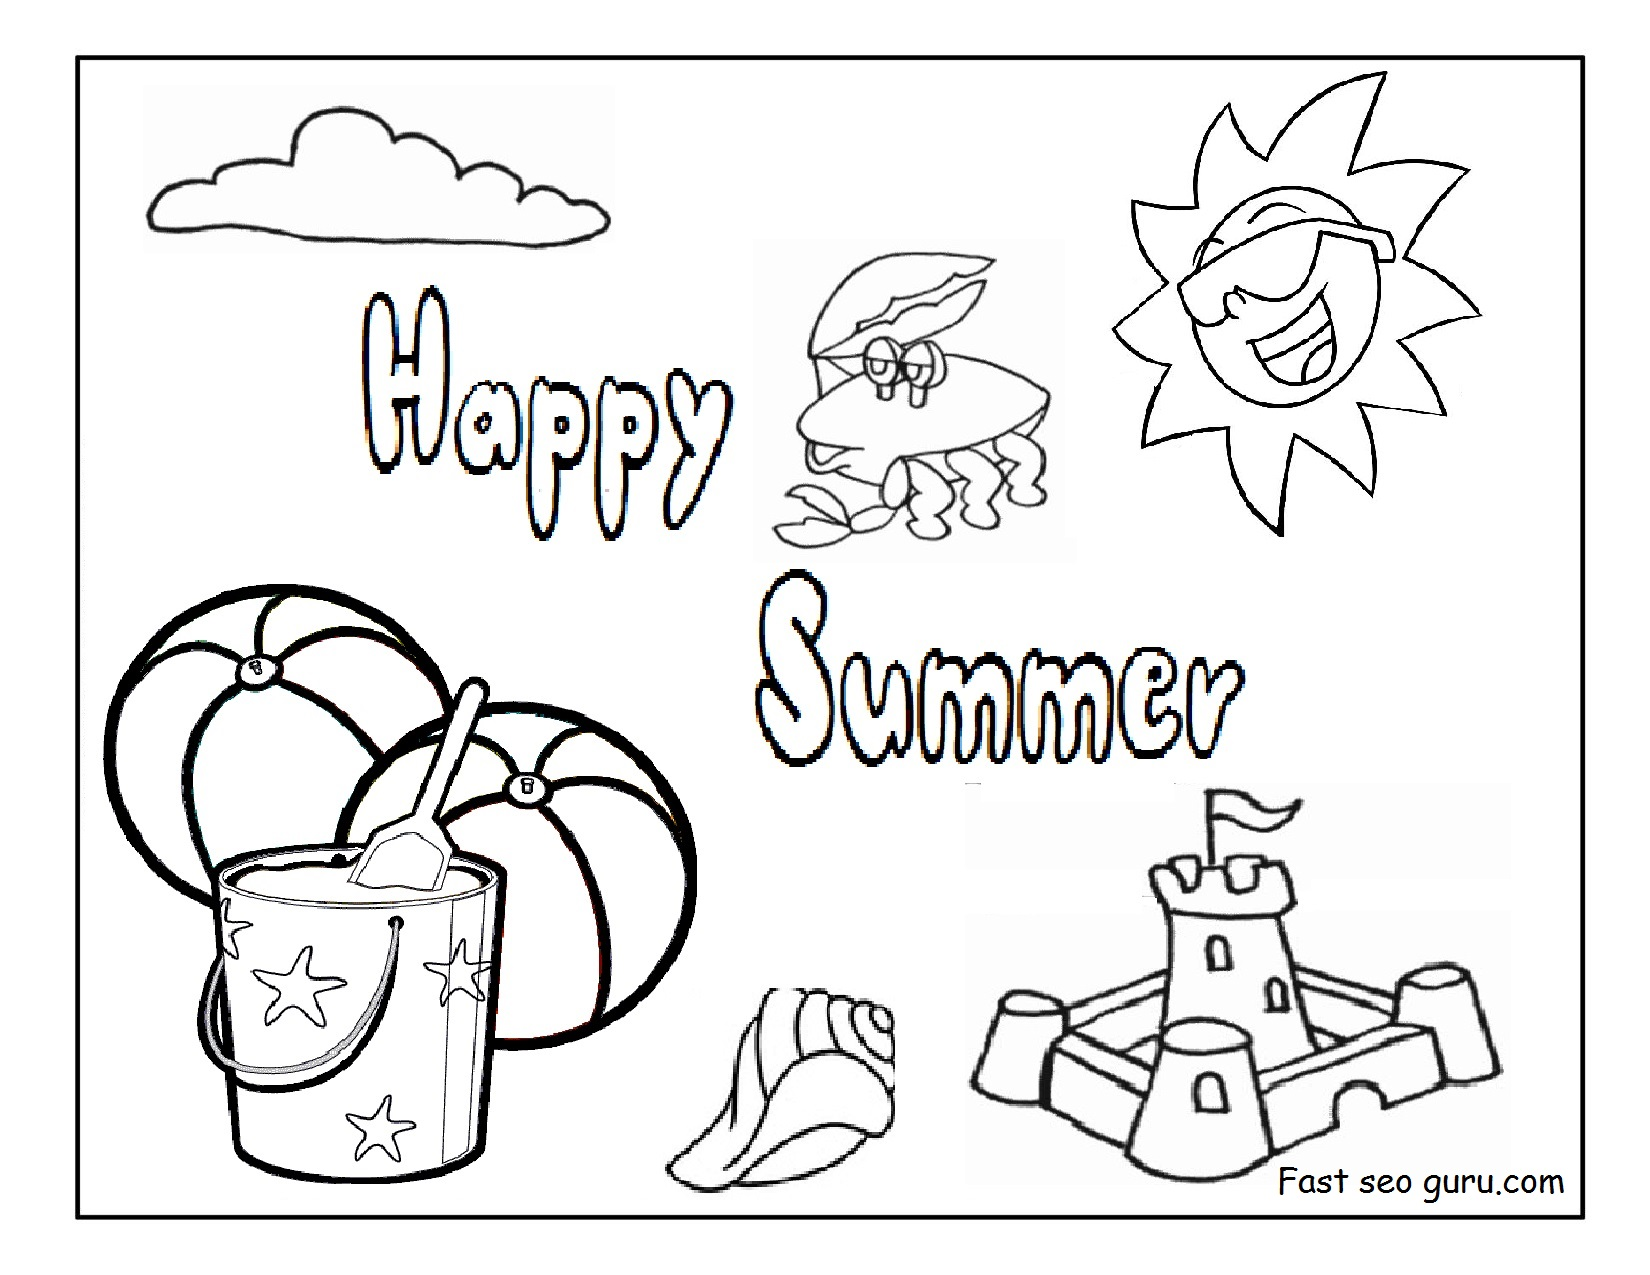 fabulous-beach-coloring-sheets-pages-free-printabler-kids-summer ... | 1275x1650